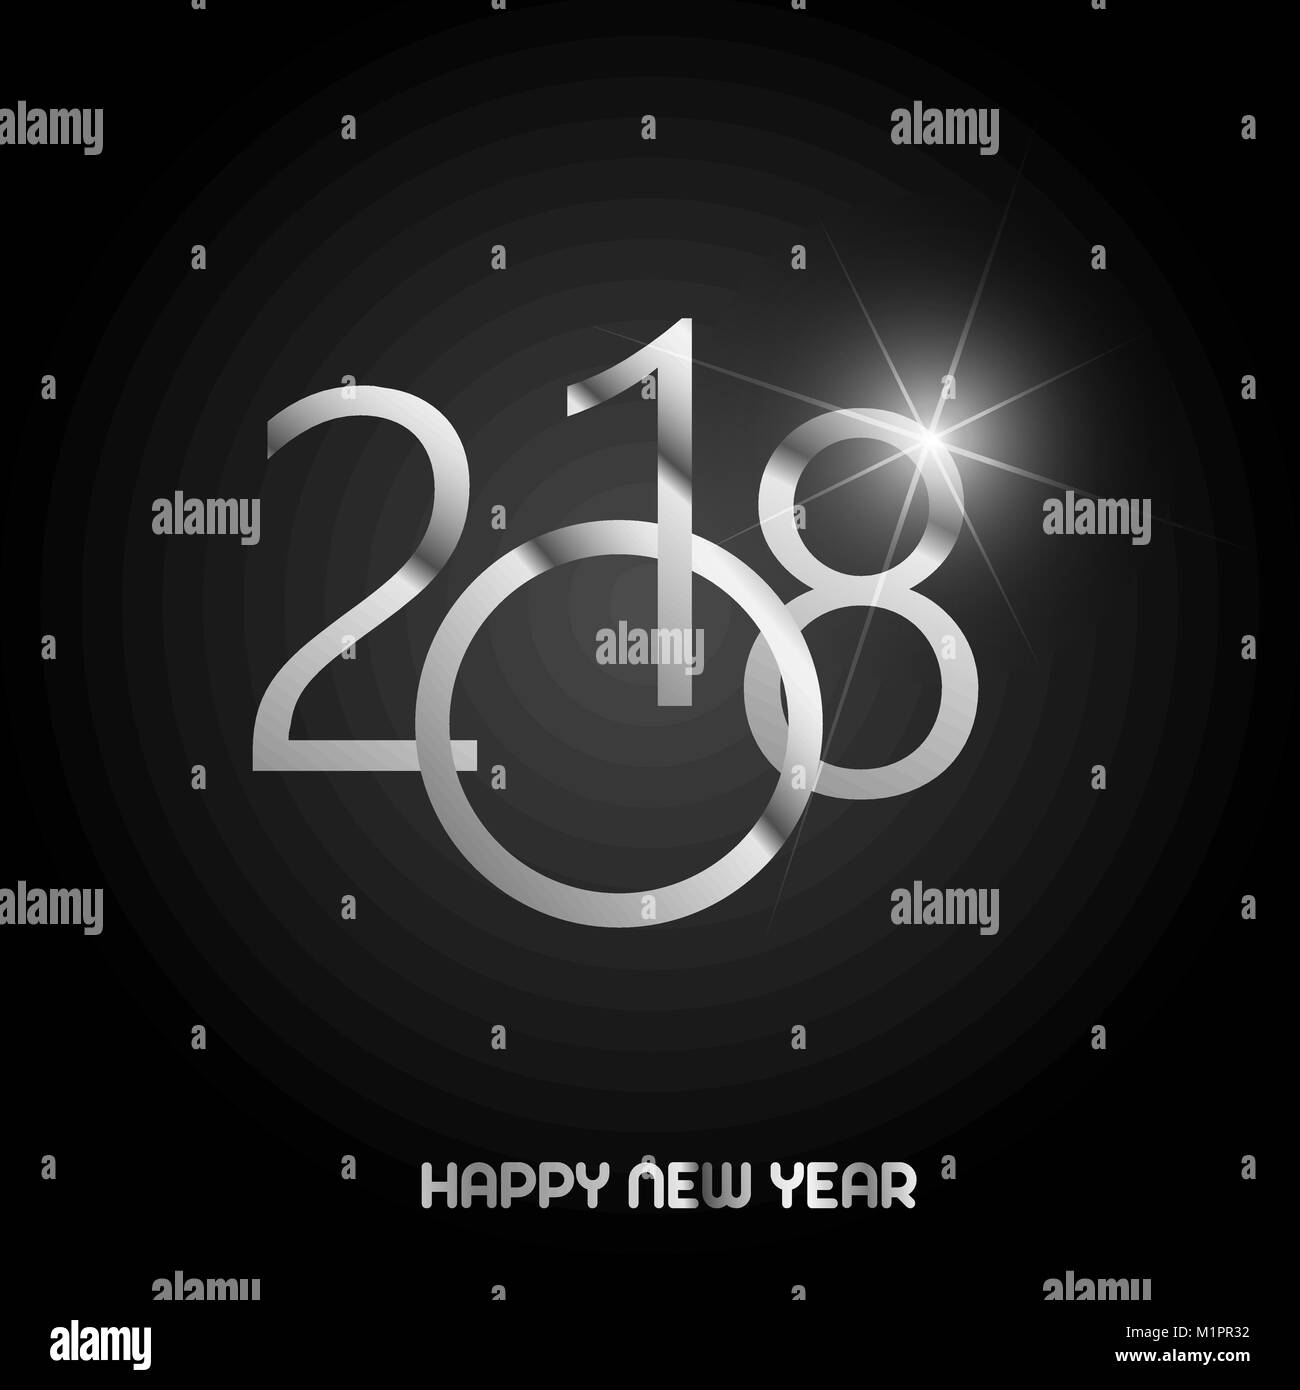 Happy New Year Greeting Card With Shining Silver Text On Black Stock